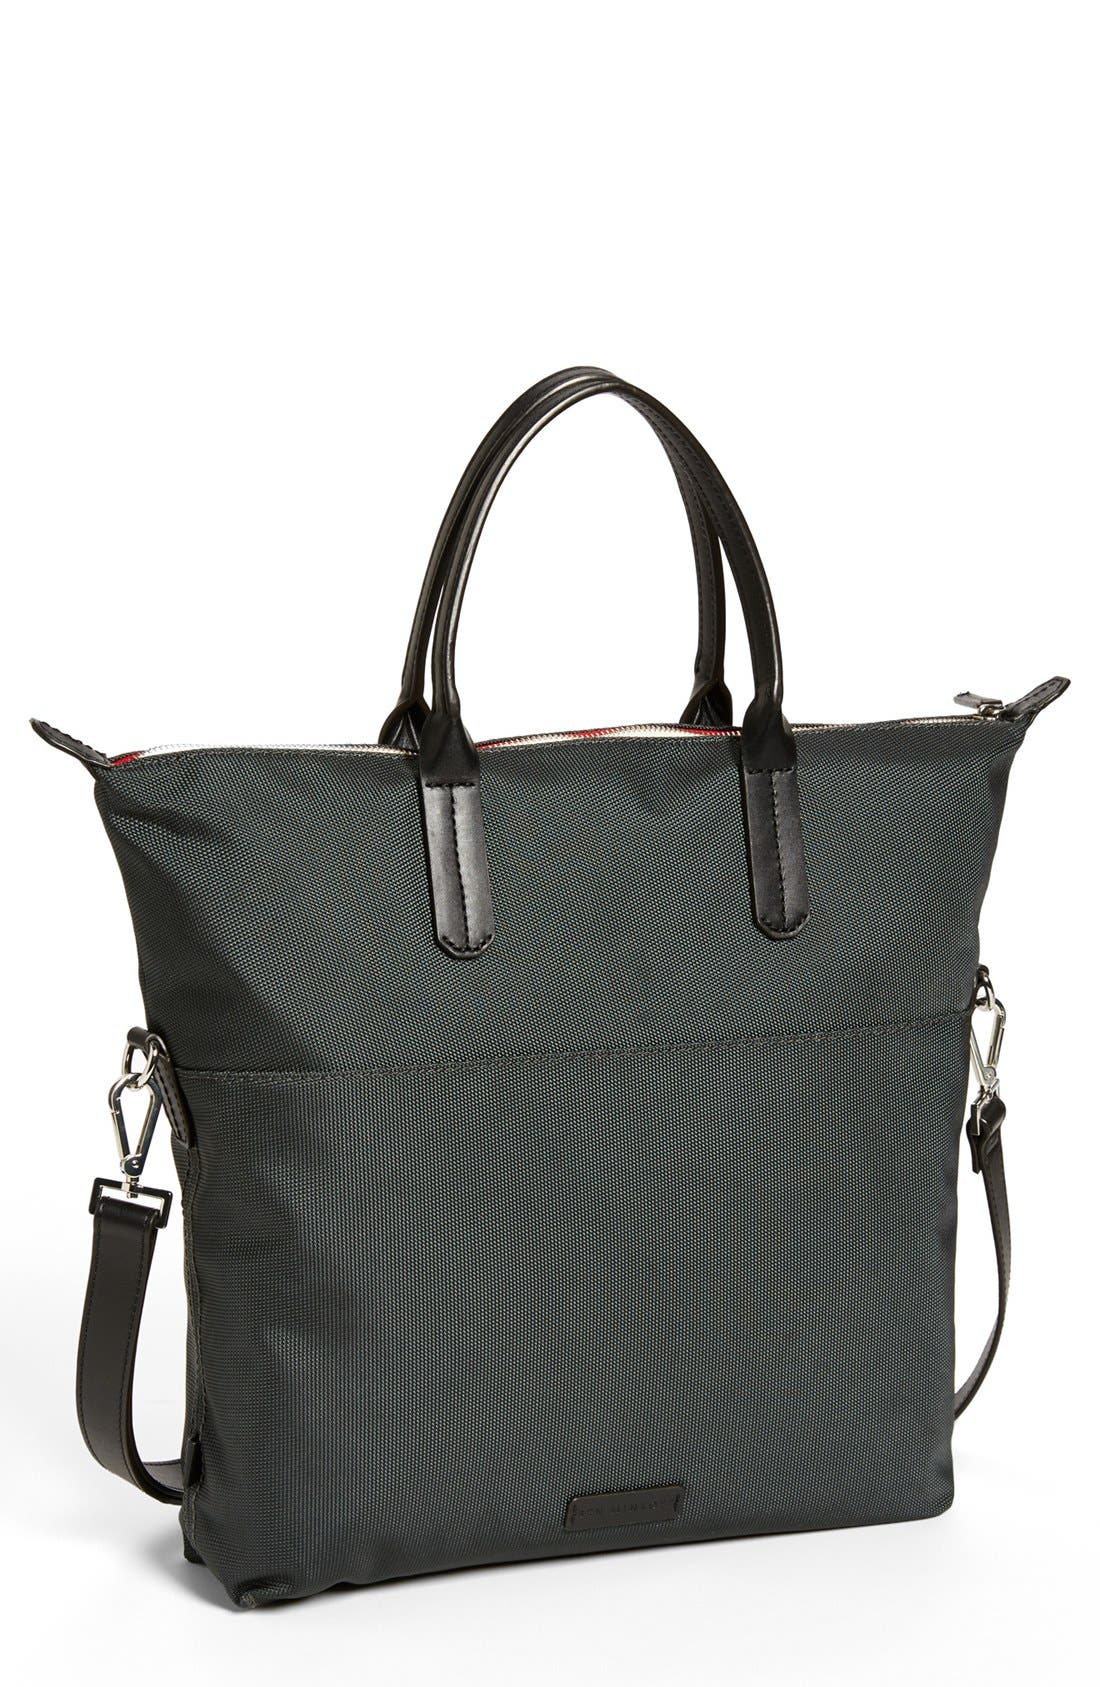 URI MINKOFF, Ben Minkoff 'Heath' Tote Bag, Main thumbnail 1, color, 020